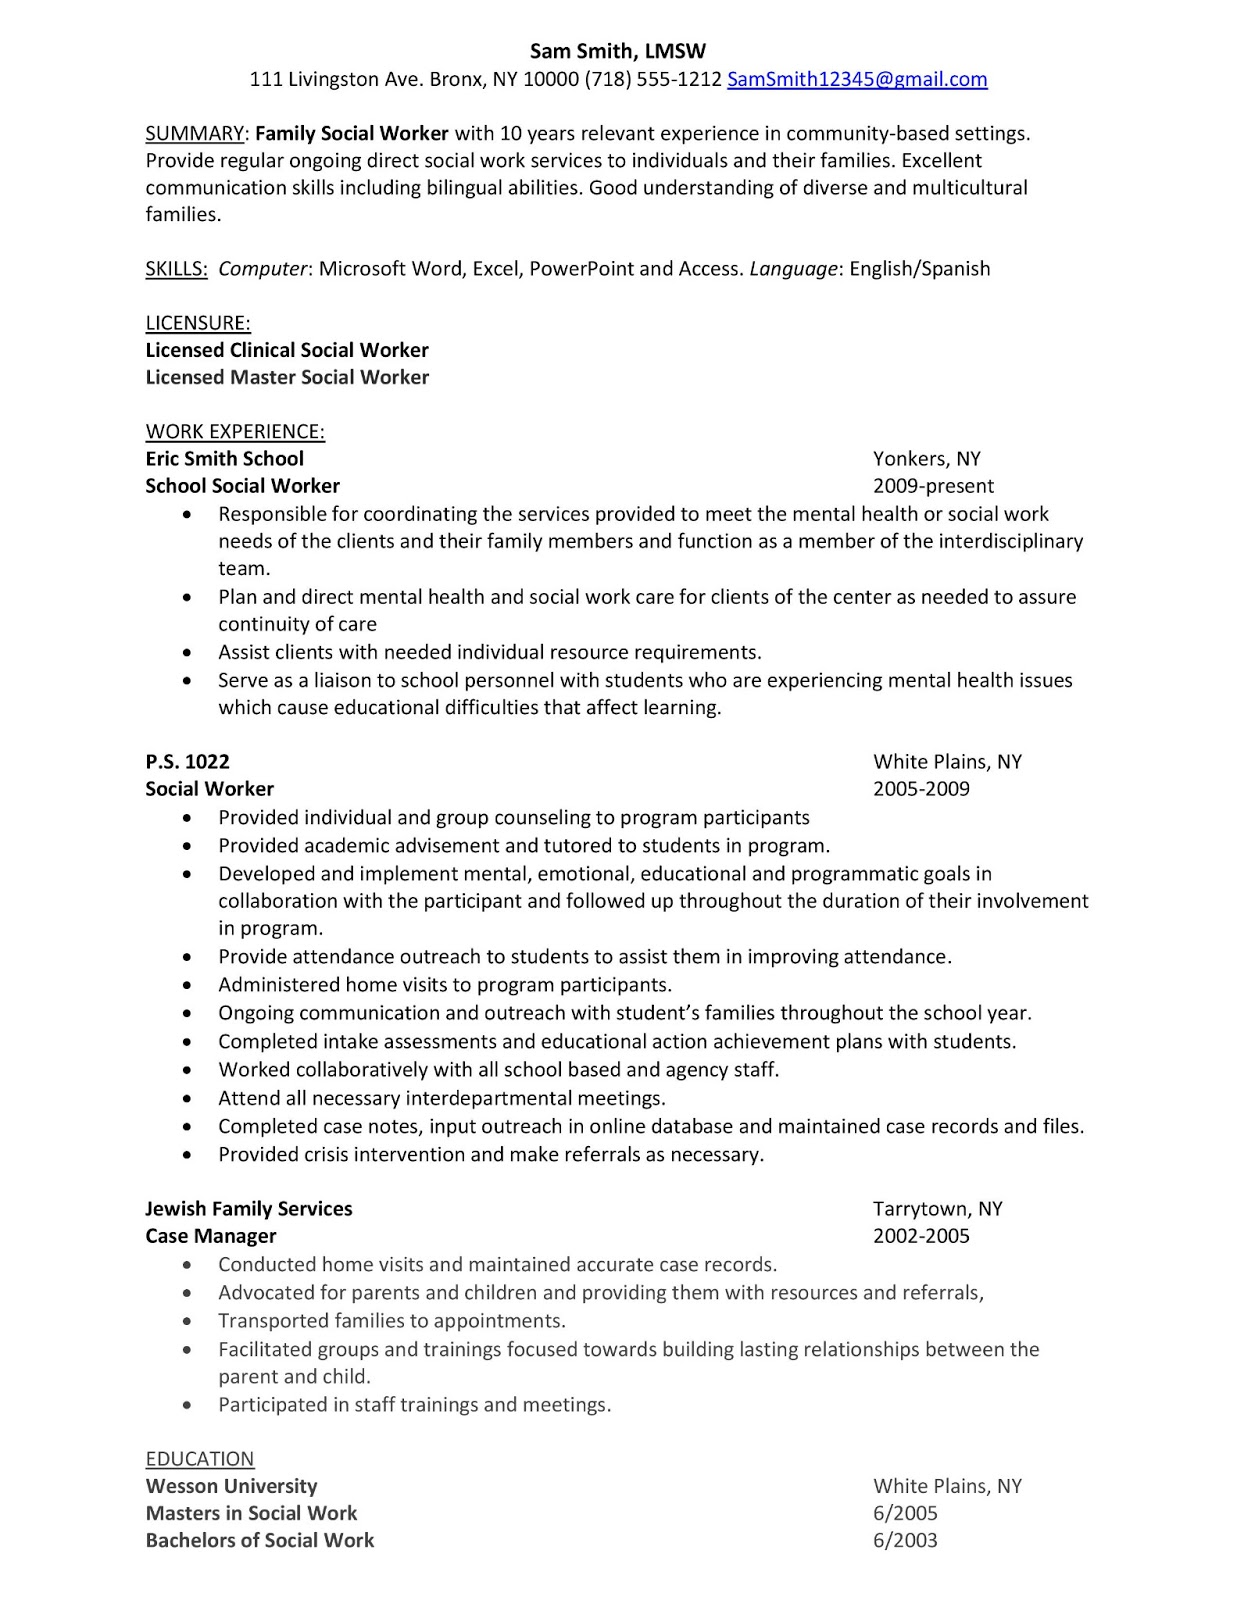 resume How To Write A Resume For Child Care Job research paper on video games buy essay of top quality child care resume children sample template job description